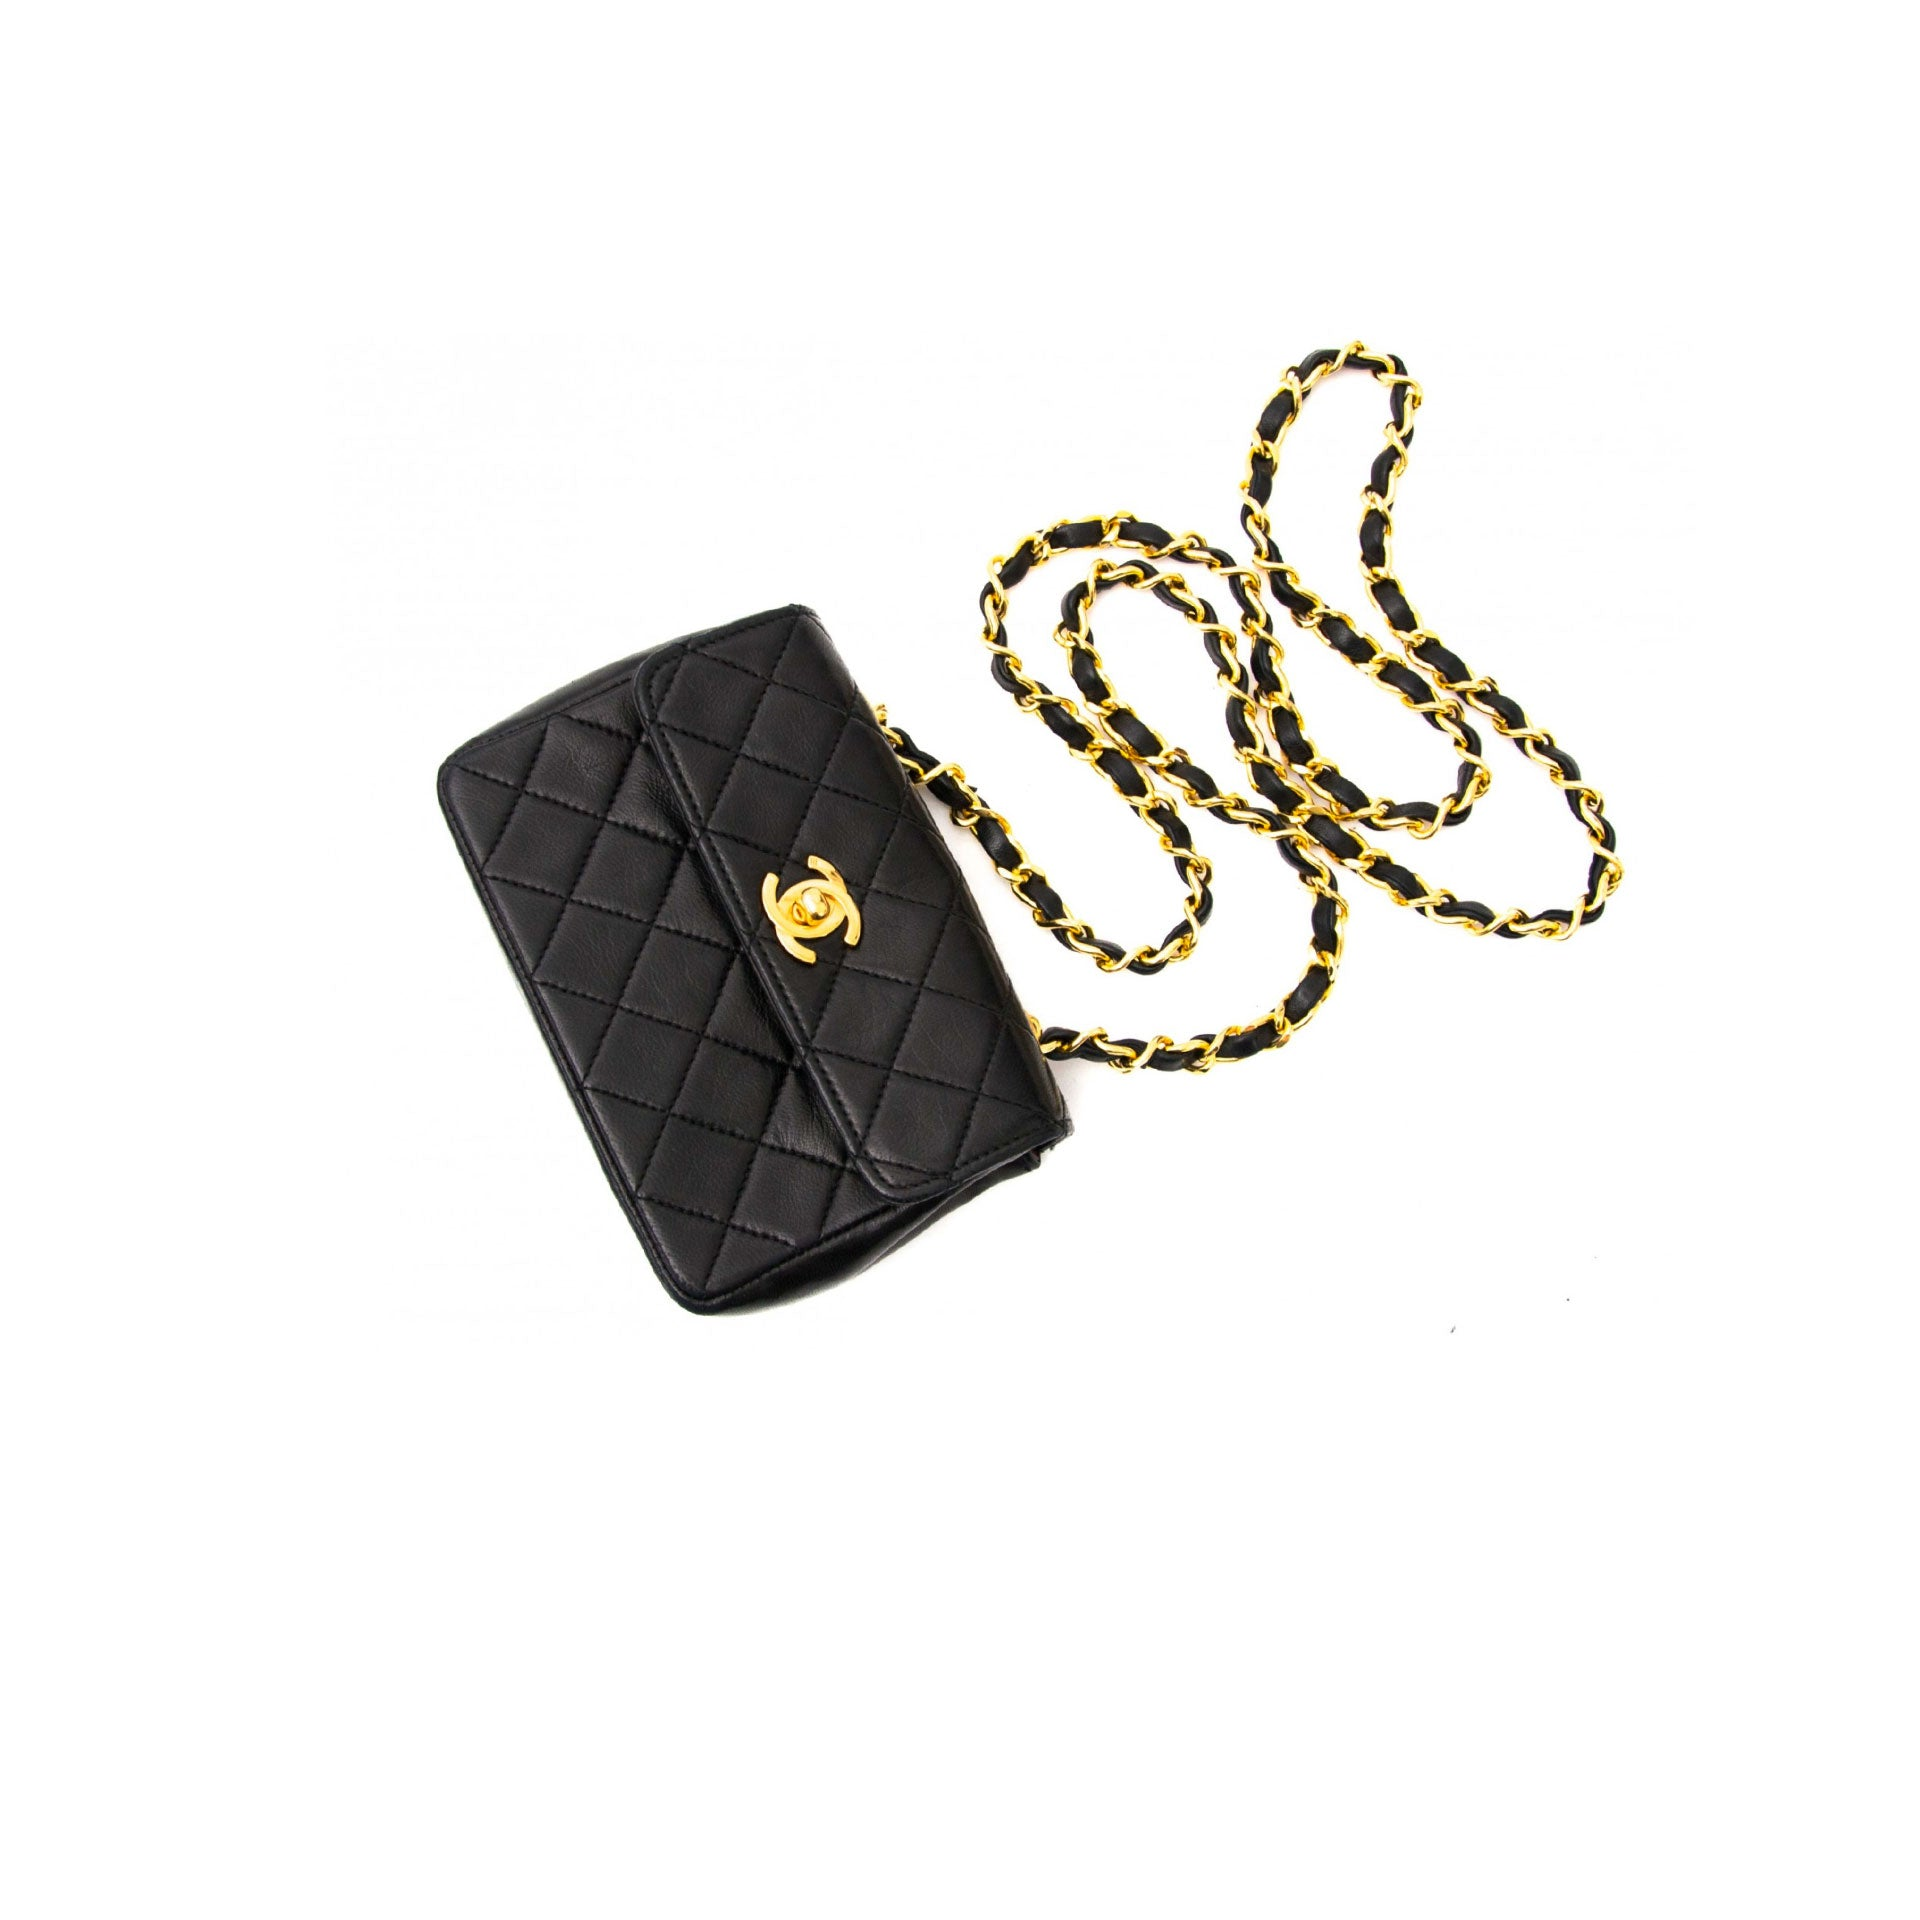 Chanel Mini Vintage Lambskin Crossbody Classic Flap Bag